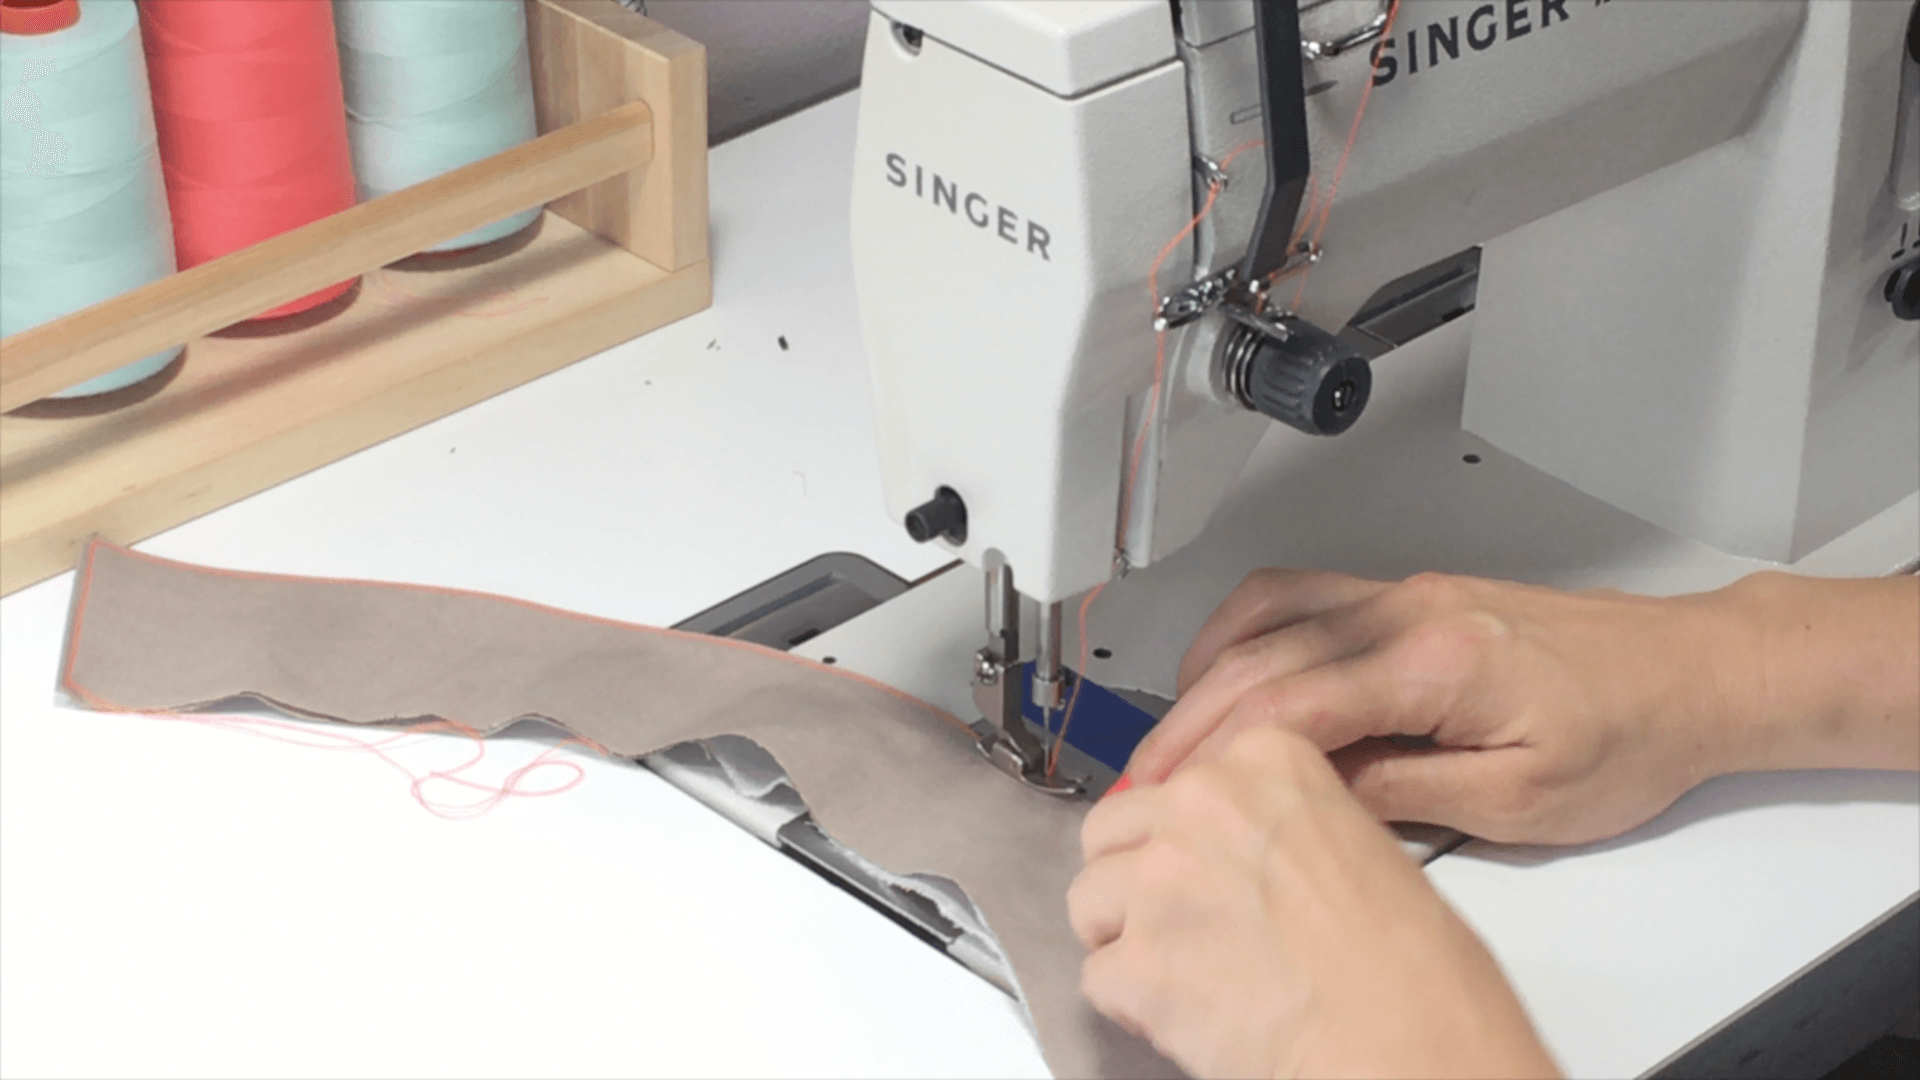 In this written and video tutorial, I will walk you through the steps to construct a collar and attach and sew it to the shirt in one sewn step. Click through to watch and learn!